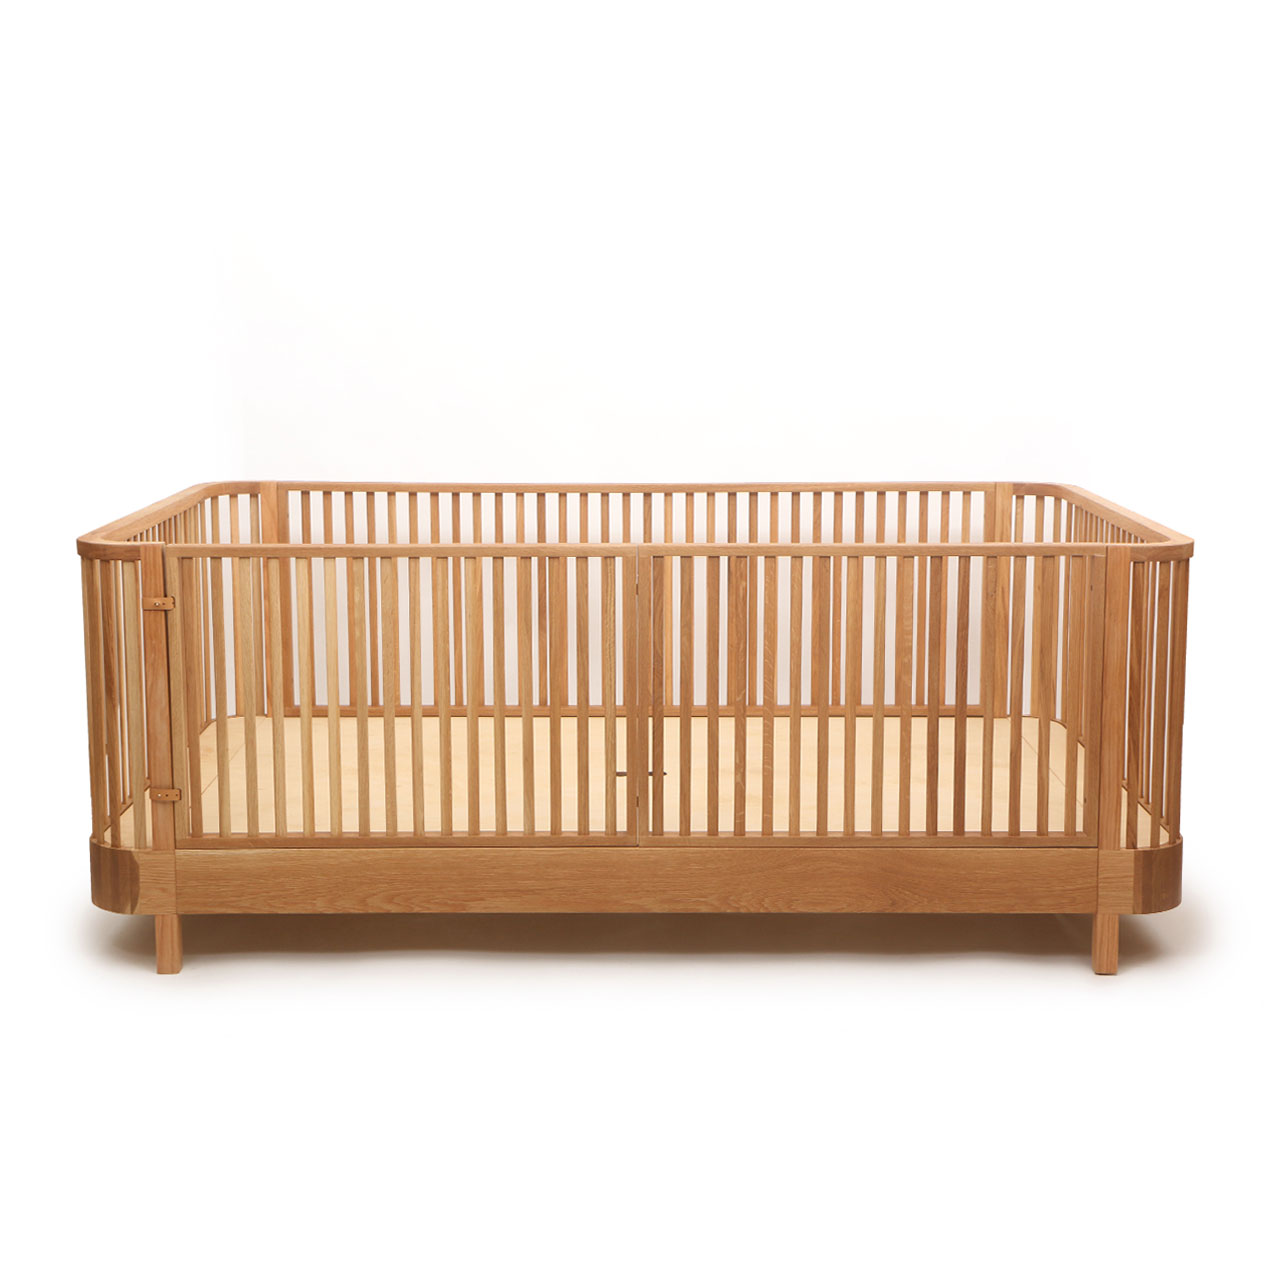 LOGGIA/Bed for baby